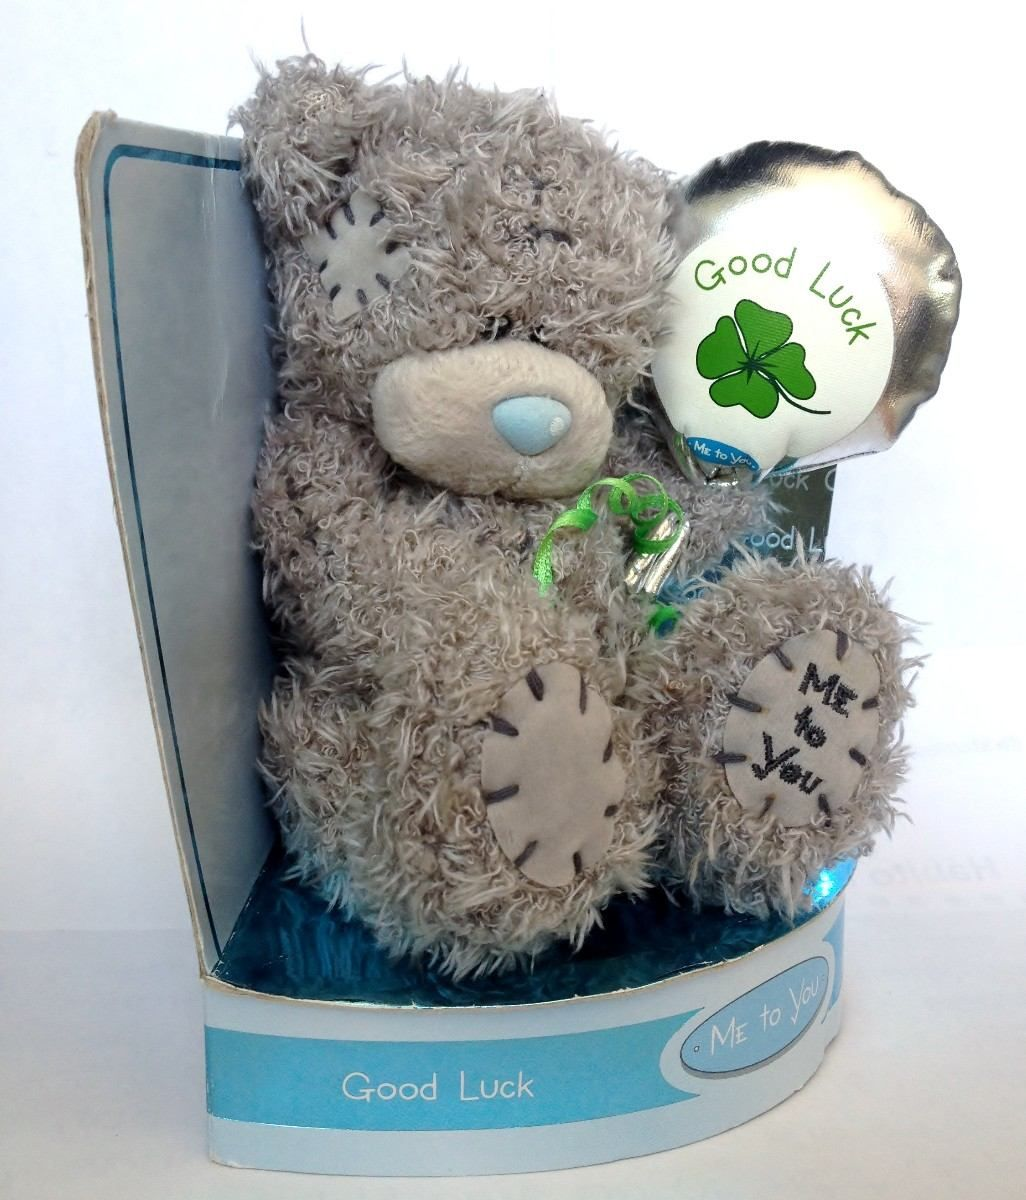 Tatty Teddy Wish You St.Patrick Day Good Luck Graphic